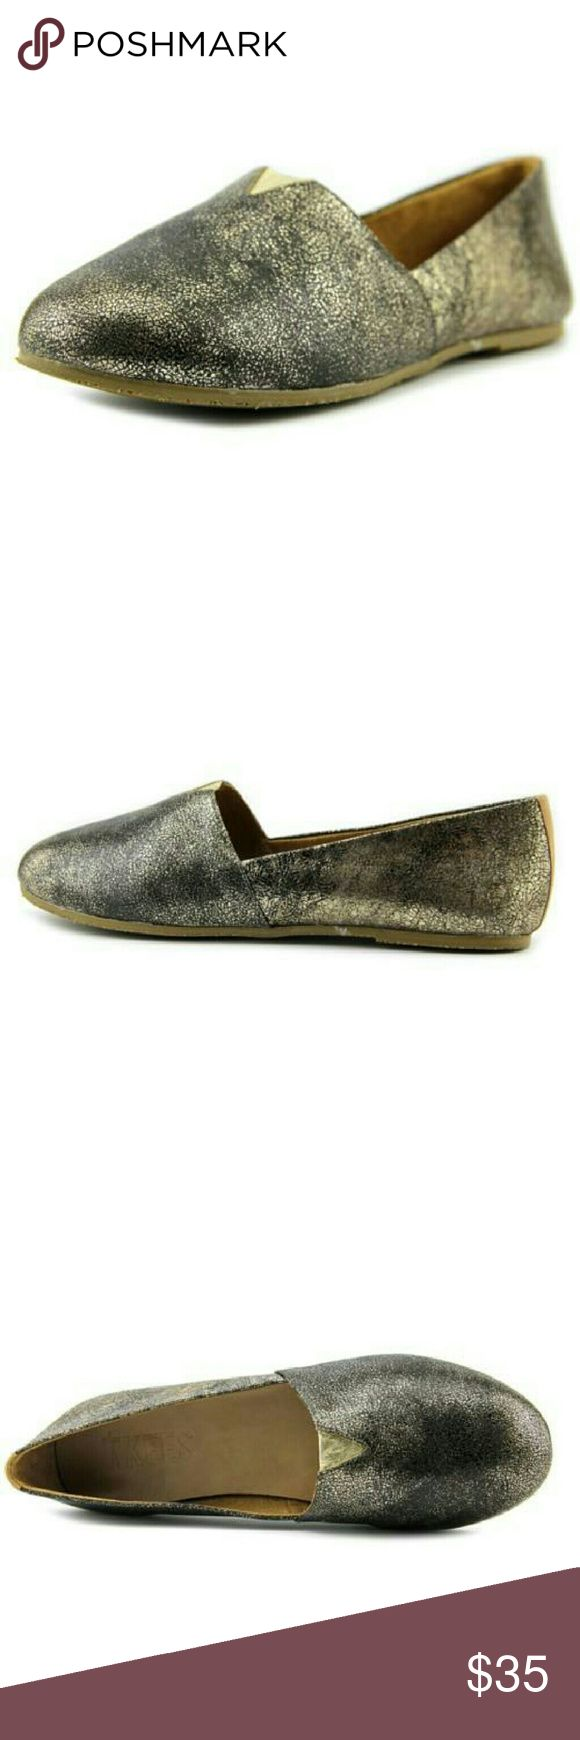 Women round toe leather loafer Brand / Style : Tkees Senny  Color : Golden Web  Material : leather  Width : medium  MADE IN BRAZIL.. Shoes Flats & Loafers